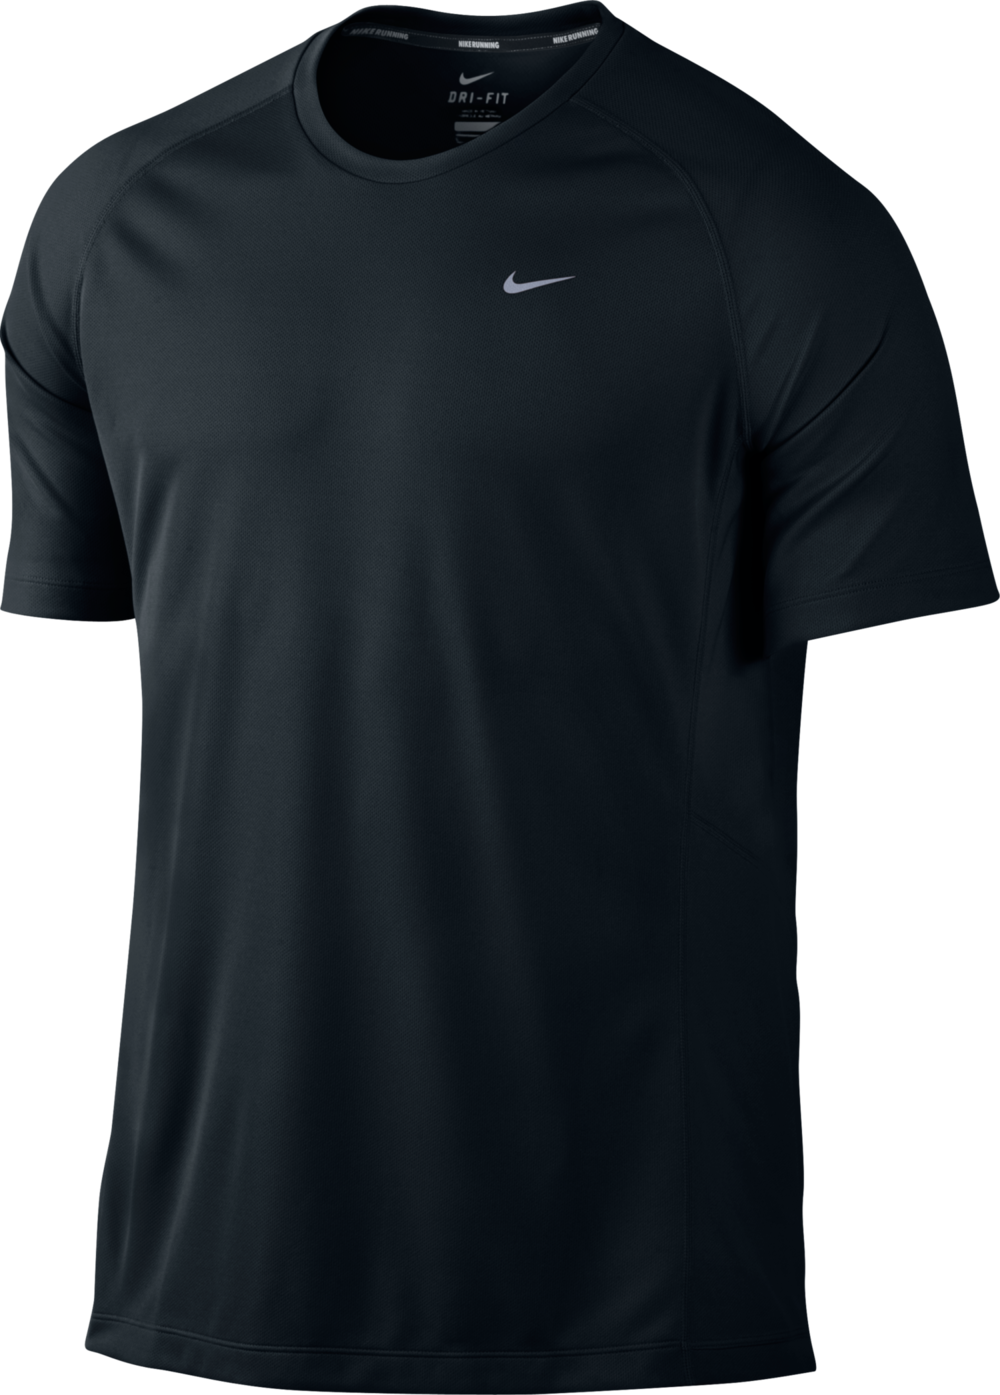 Nike Miler UV Shirt in Schwarz